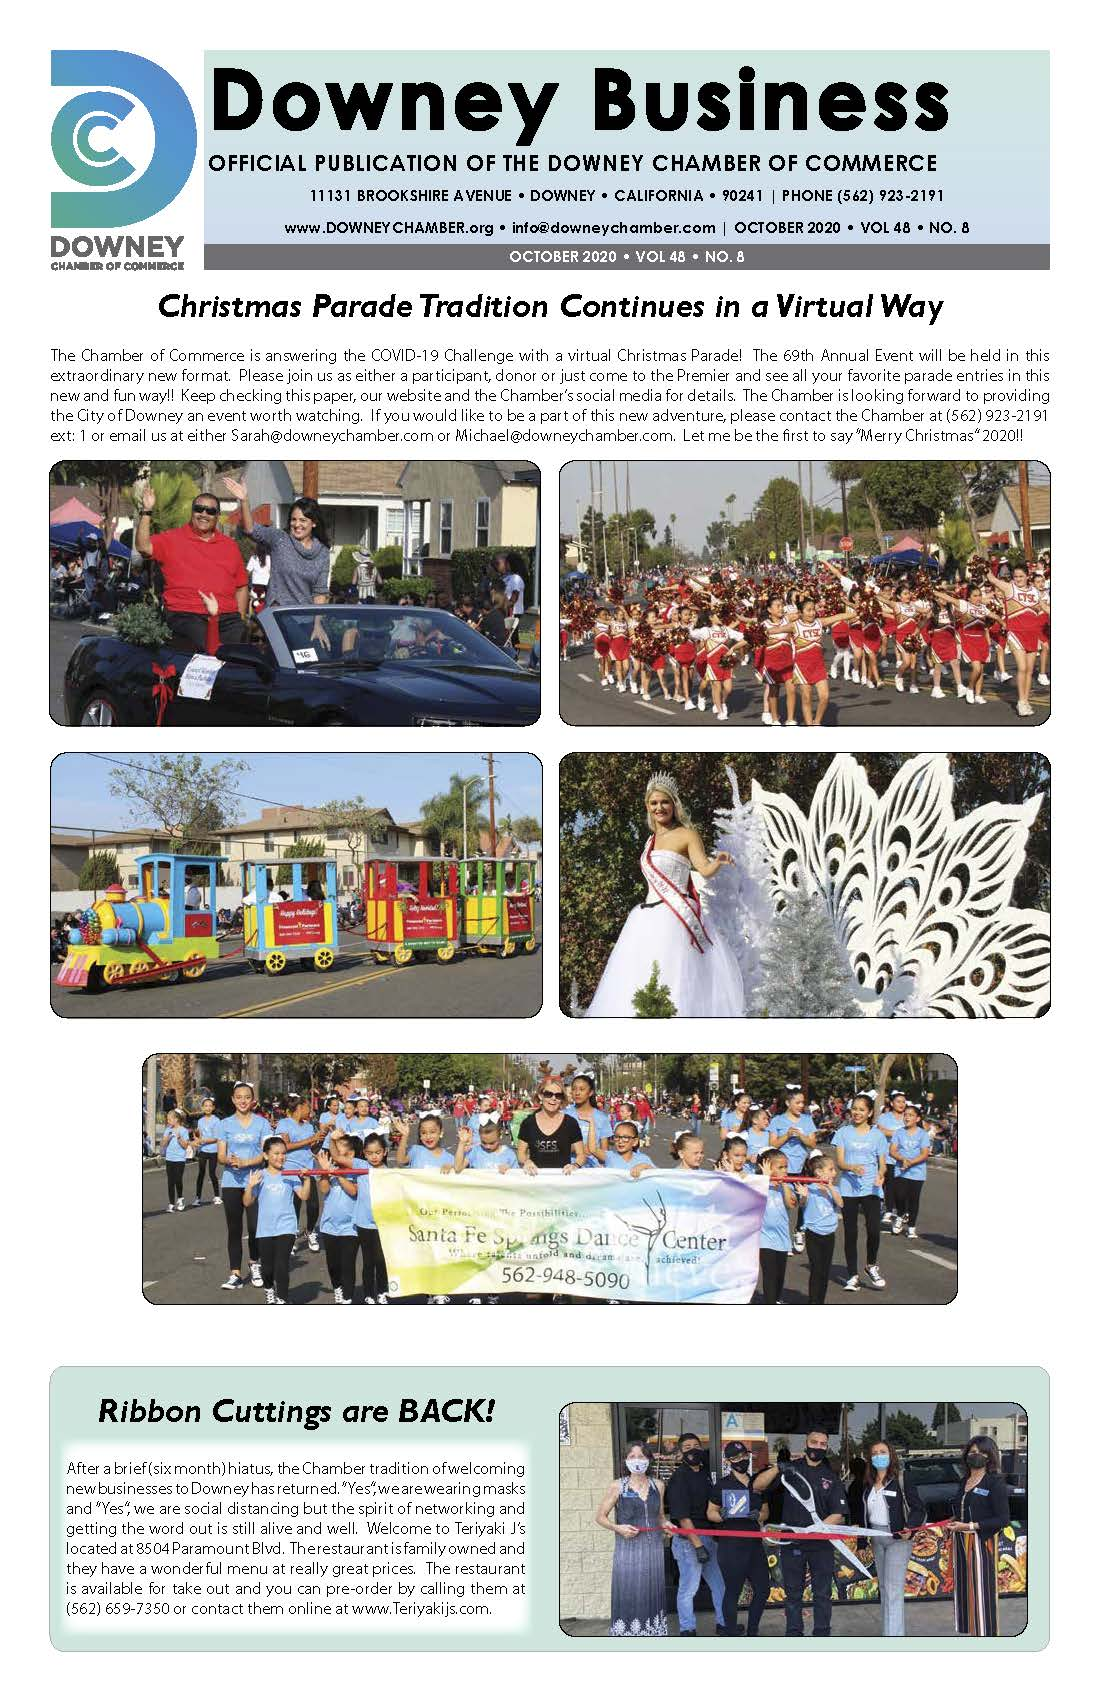 Downey Christmas Parade 2020 Downey Business Newsletters   Downey Chamber of Commerce